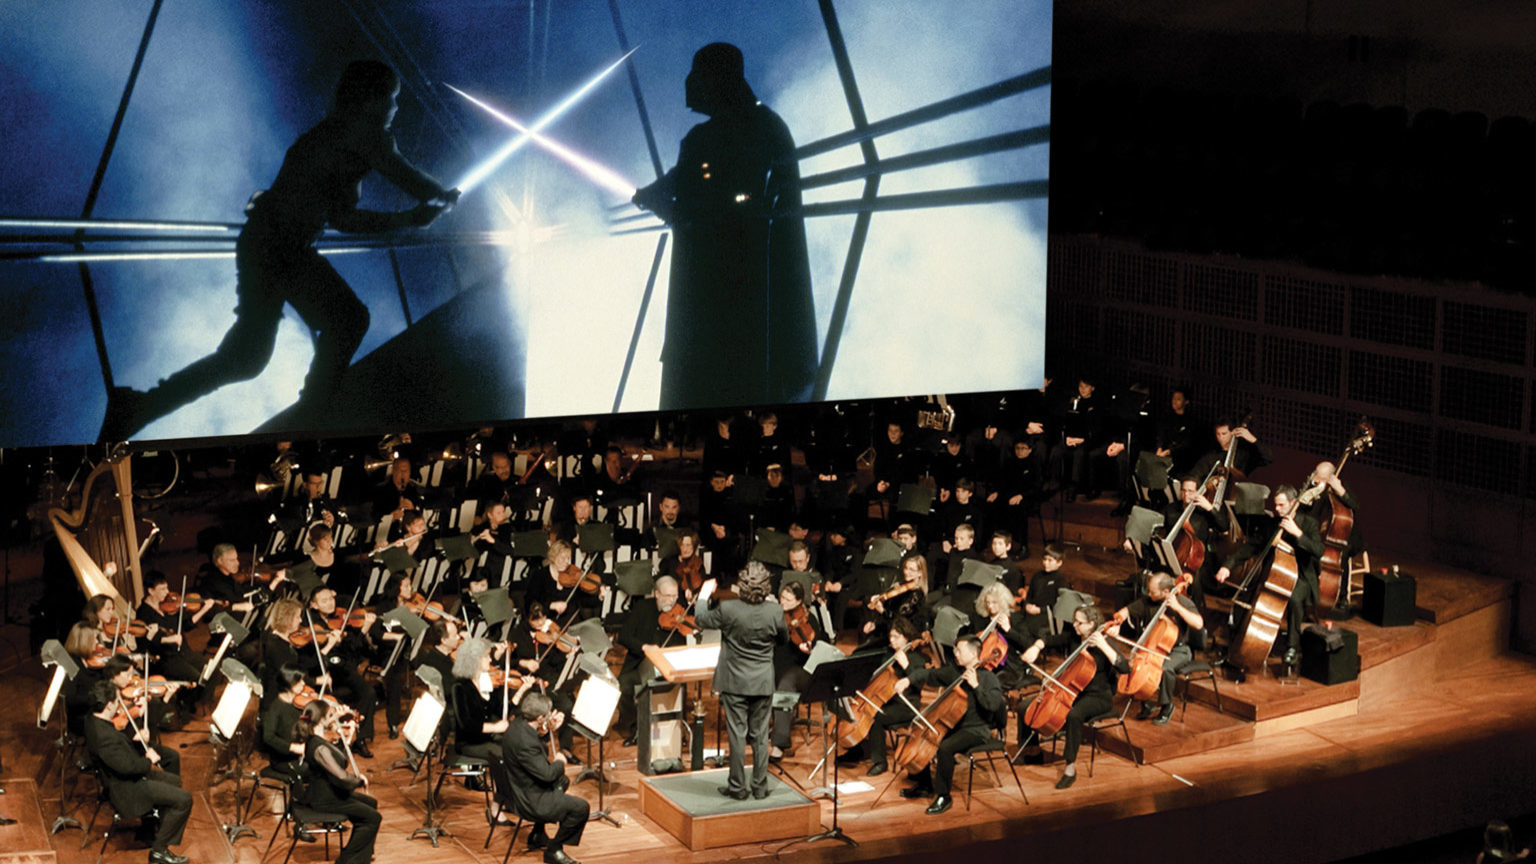 Conductor Emil de Cou on Star Wars at the Symphony